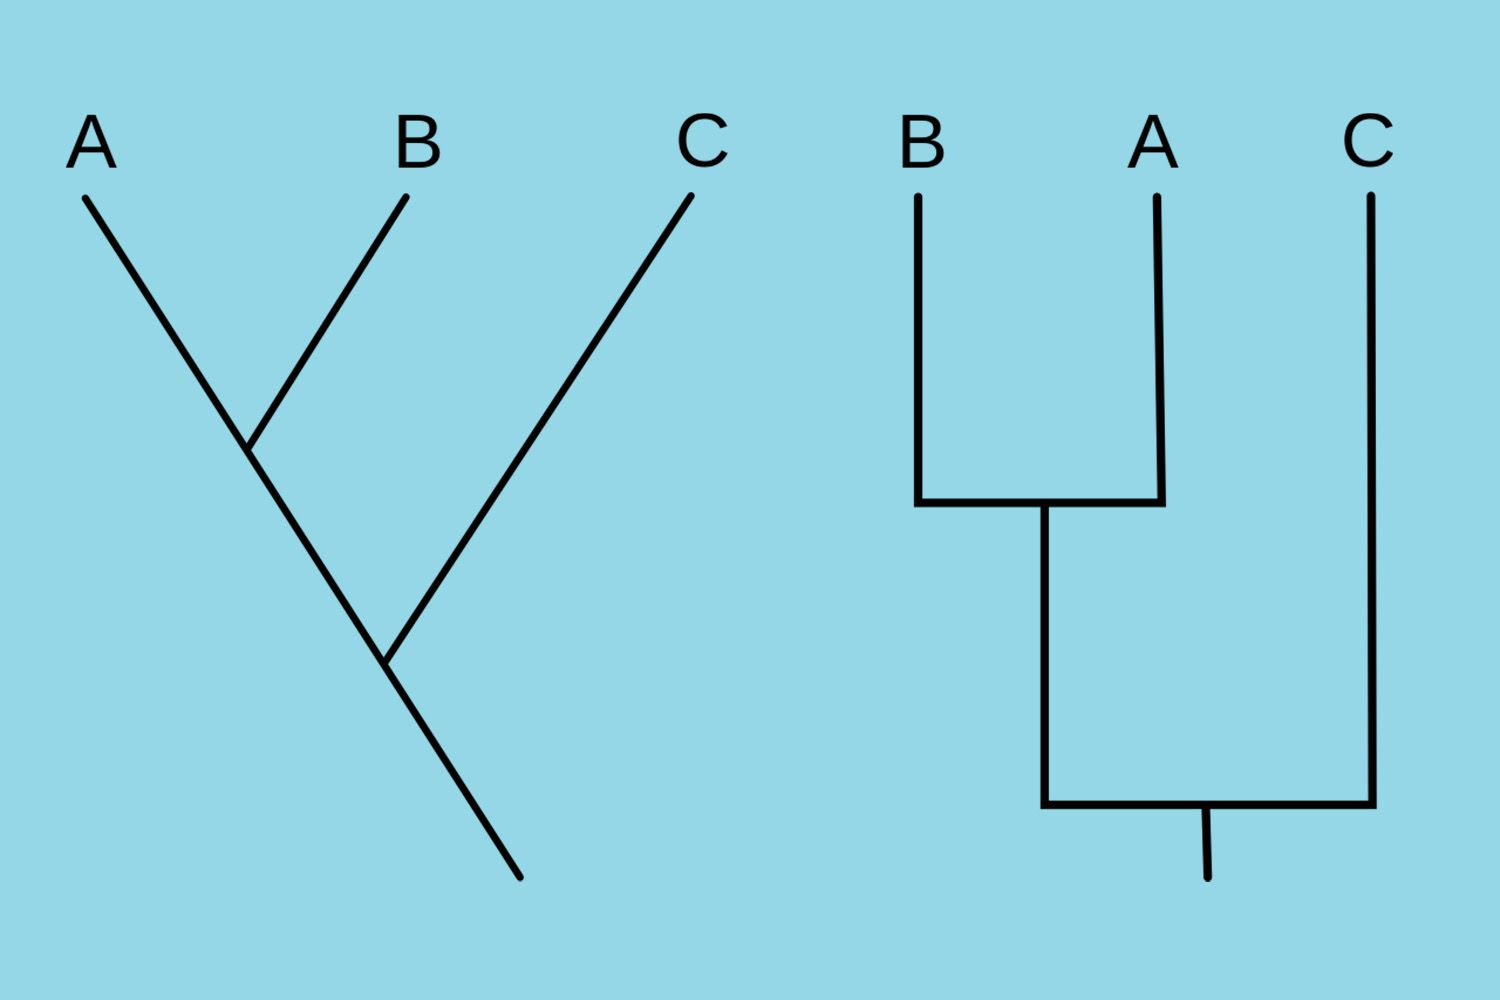 Two identical cladograms